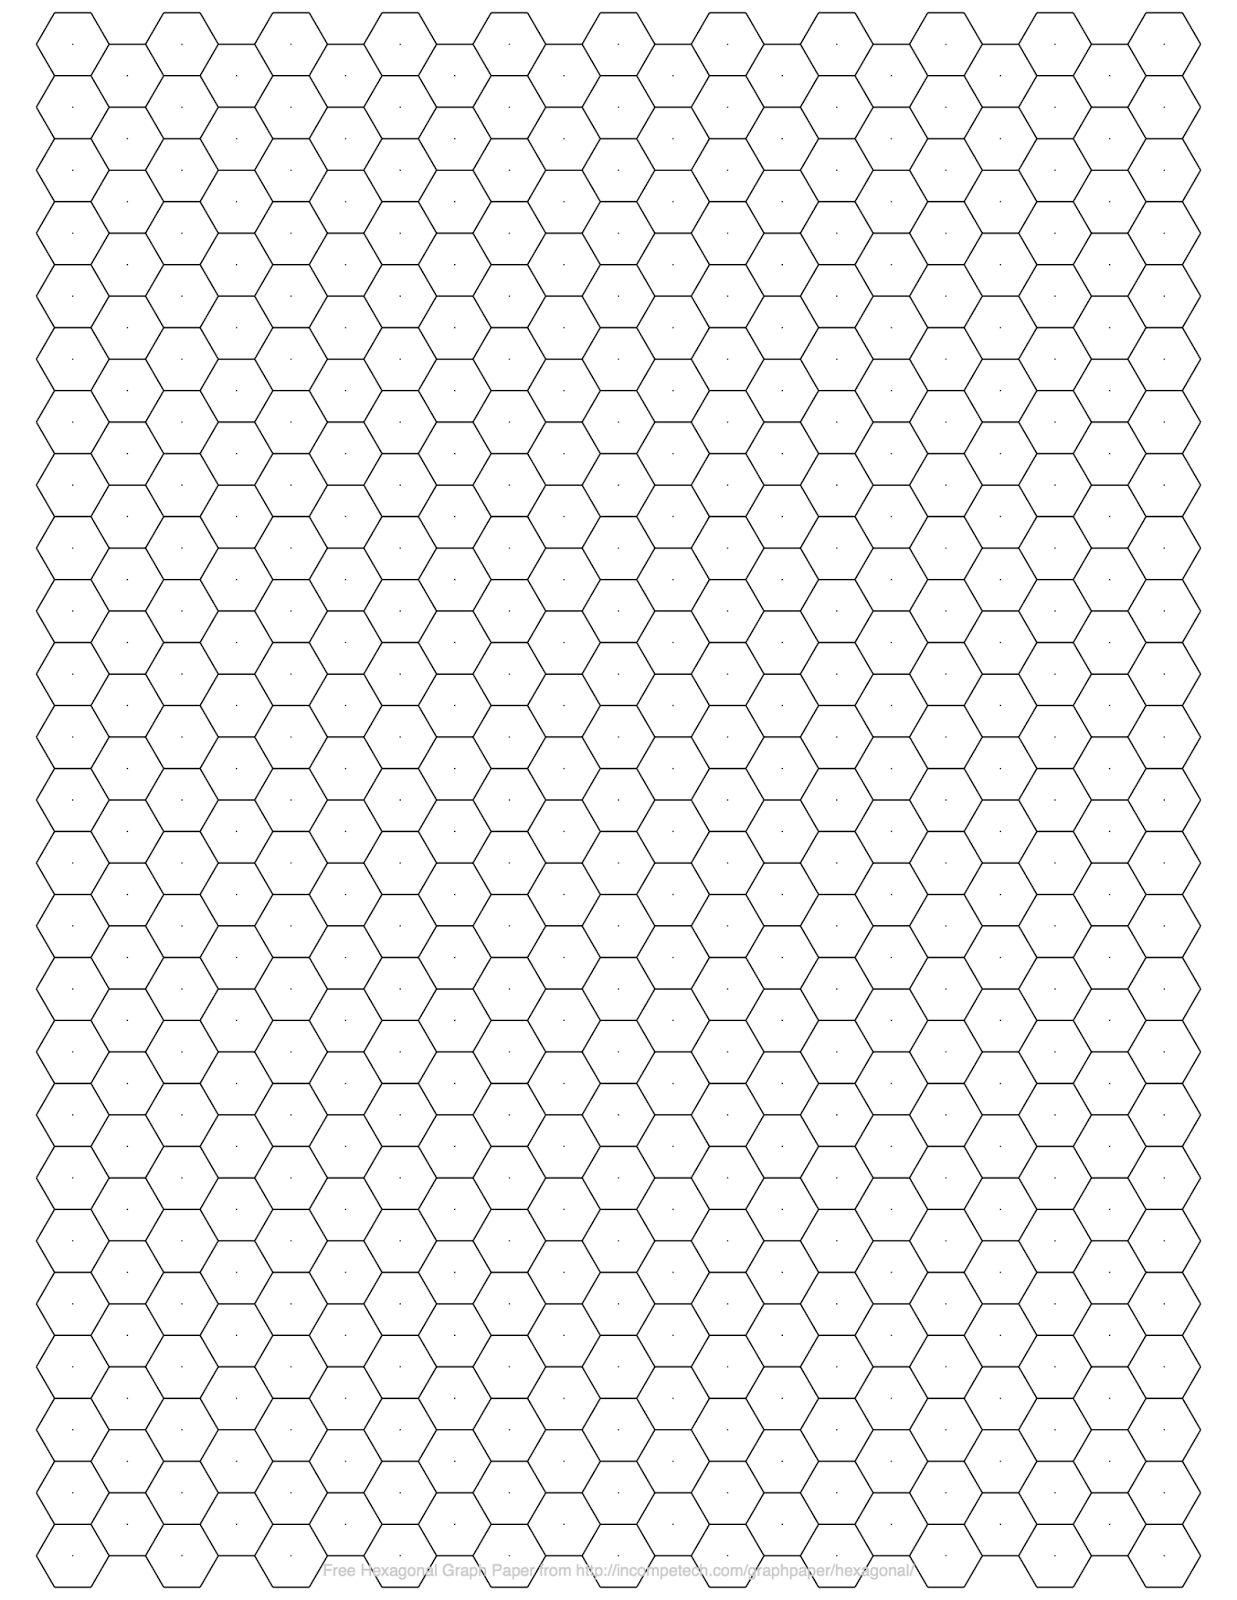 Bewitching image in printable hexagon grid